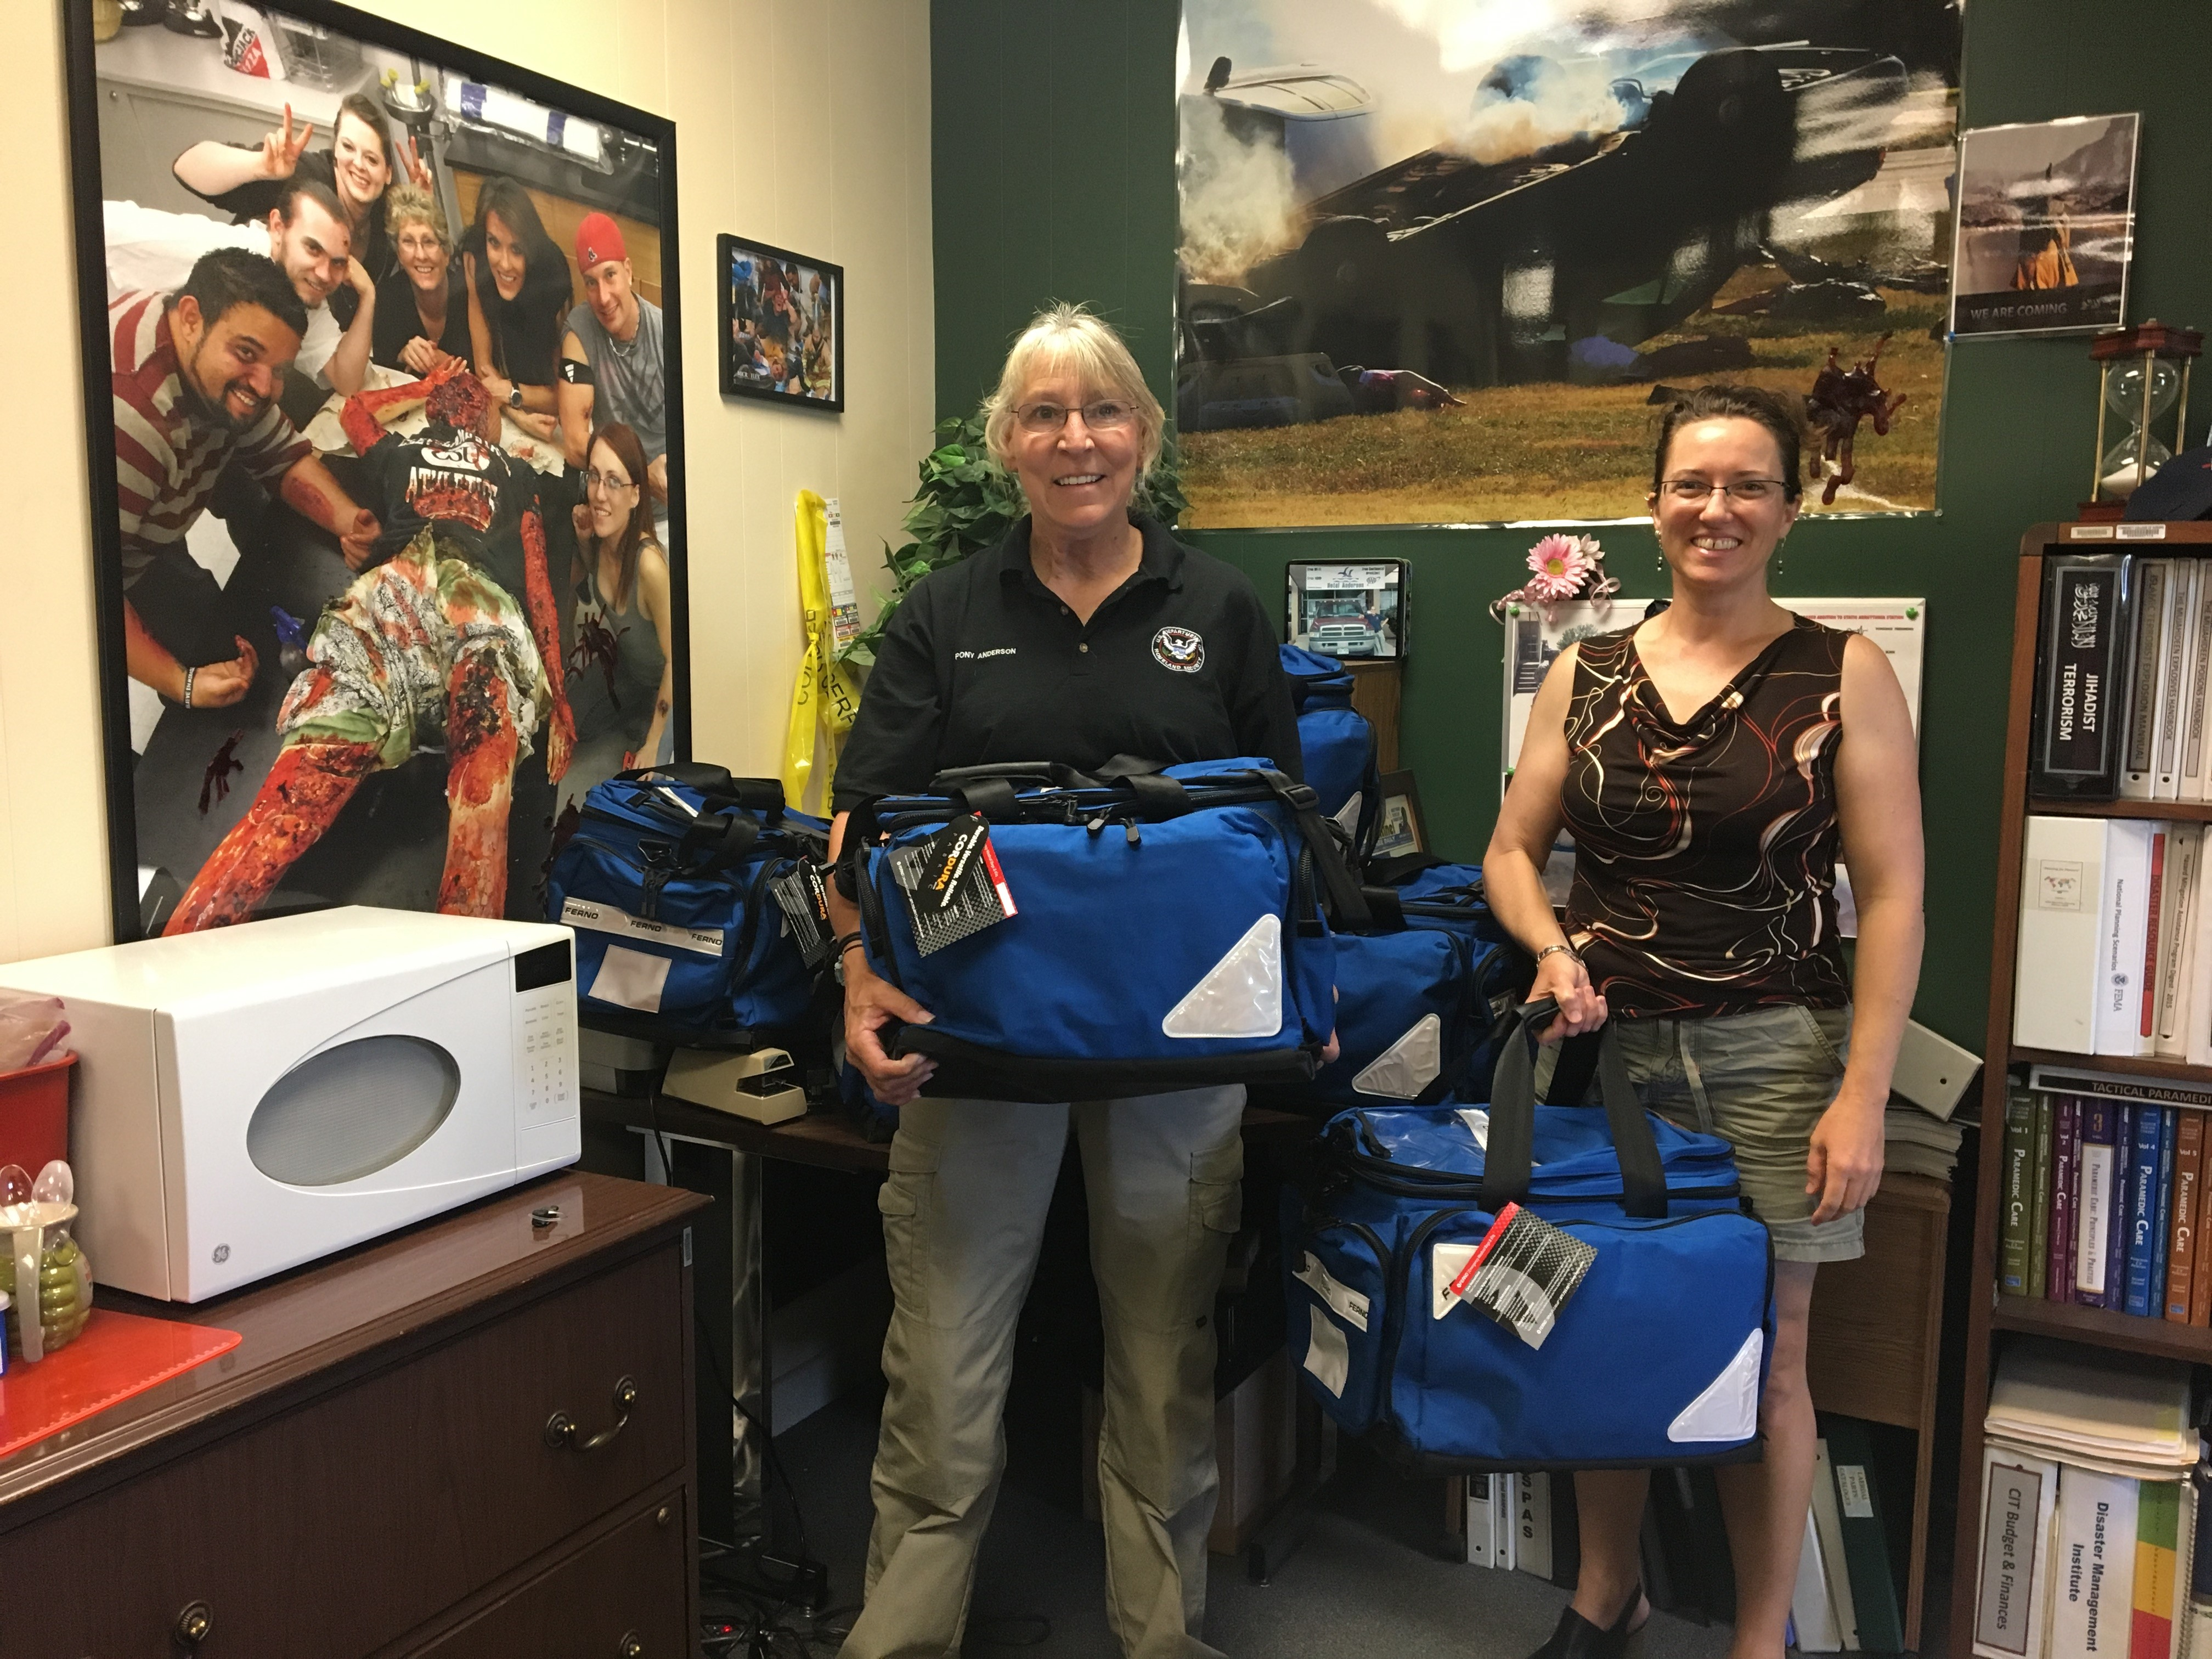 The Disaster Management Institute and Center for Simulation (Community College of Aurora) accepts donation of Ferno Bags